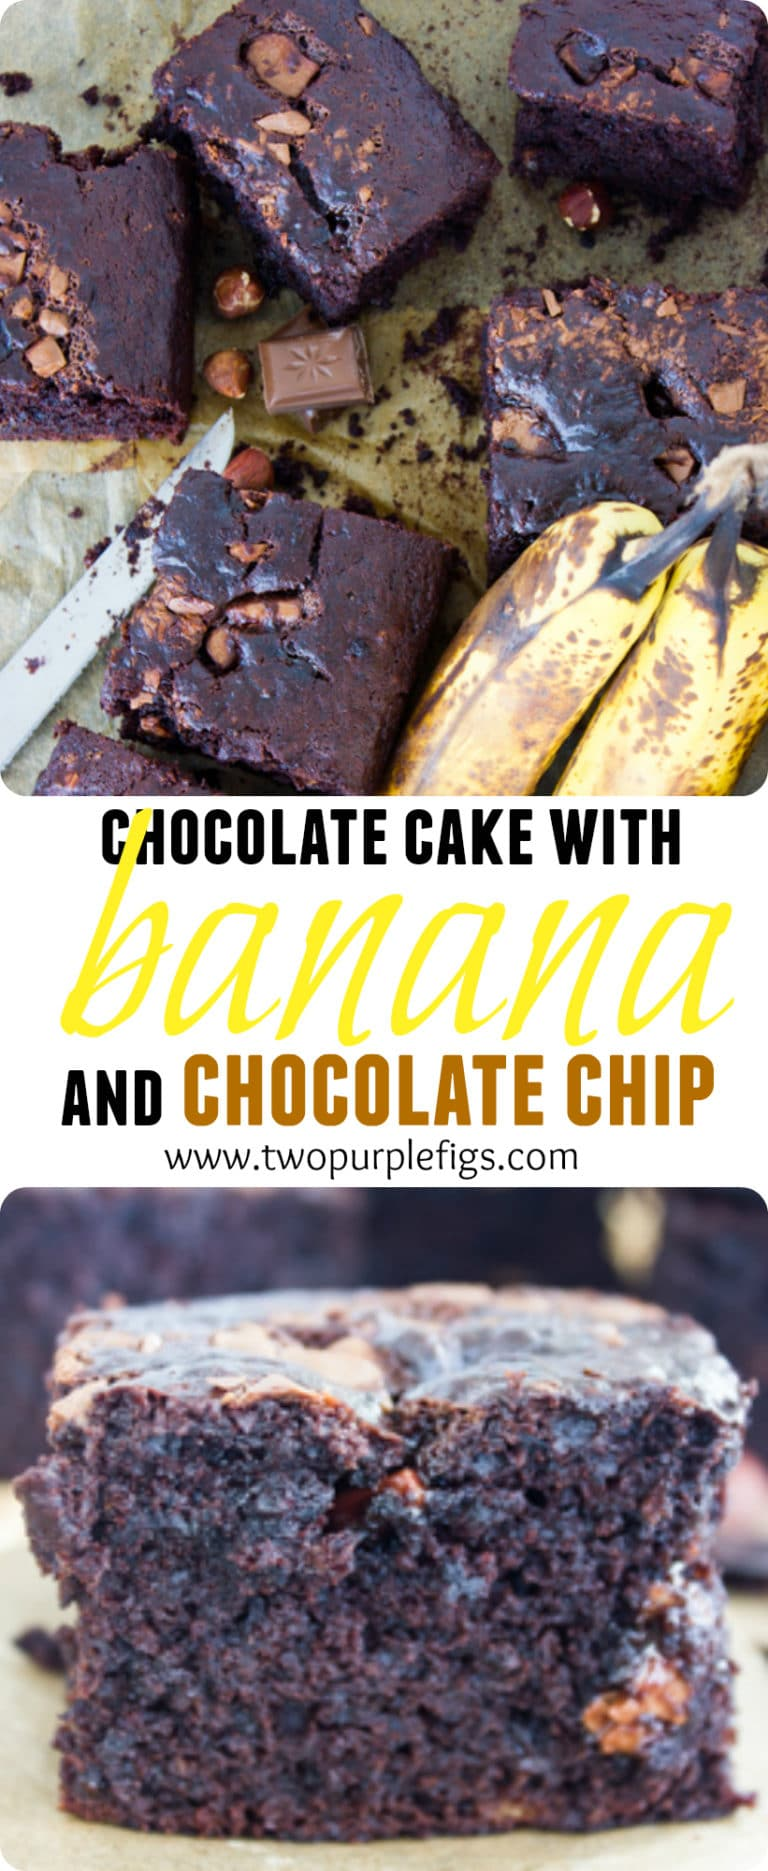 Chocolate Cake with Banana and Chocolate Chips | this easy loaf cake recipe is everything you dream about. Imagine a rich, moist, chocolate cake with a hint of banana flavor and lots of chocolatey bursts from the chocolate chips.| www.twopurplefigs.com | #easy, #cake, #dessert, #moist, #birthday, #simple